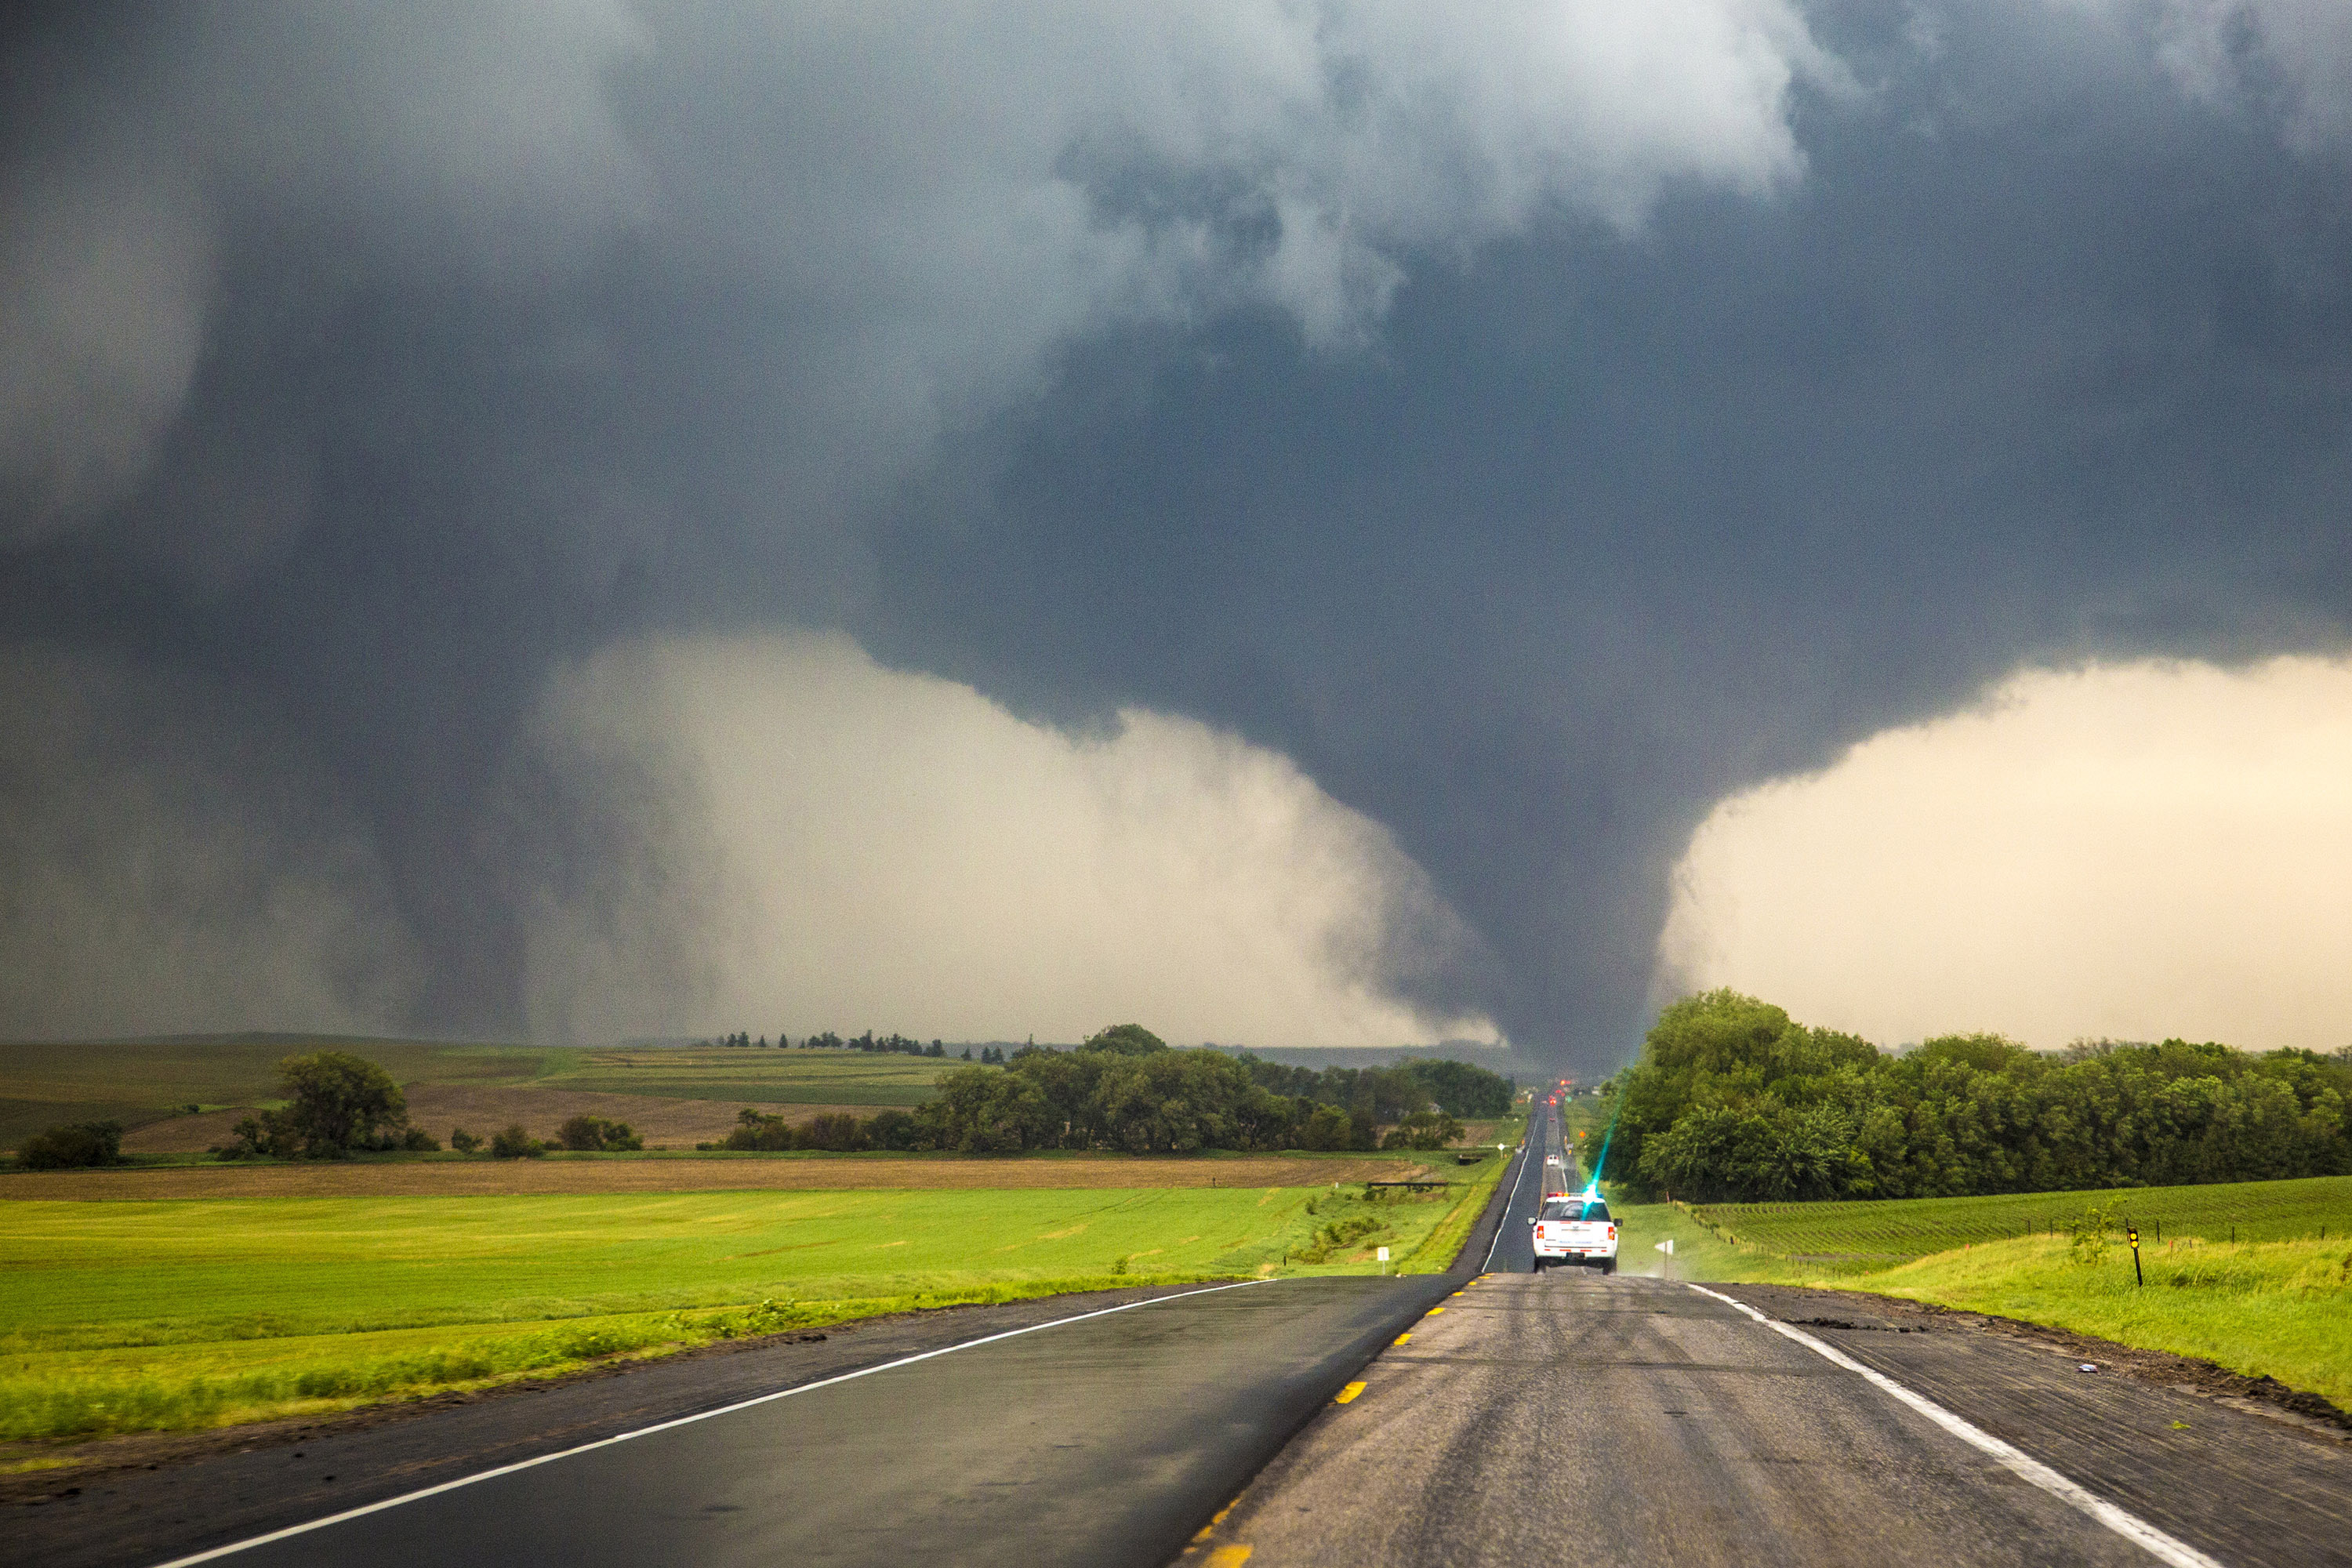 tornado wallpapers high quality download free